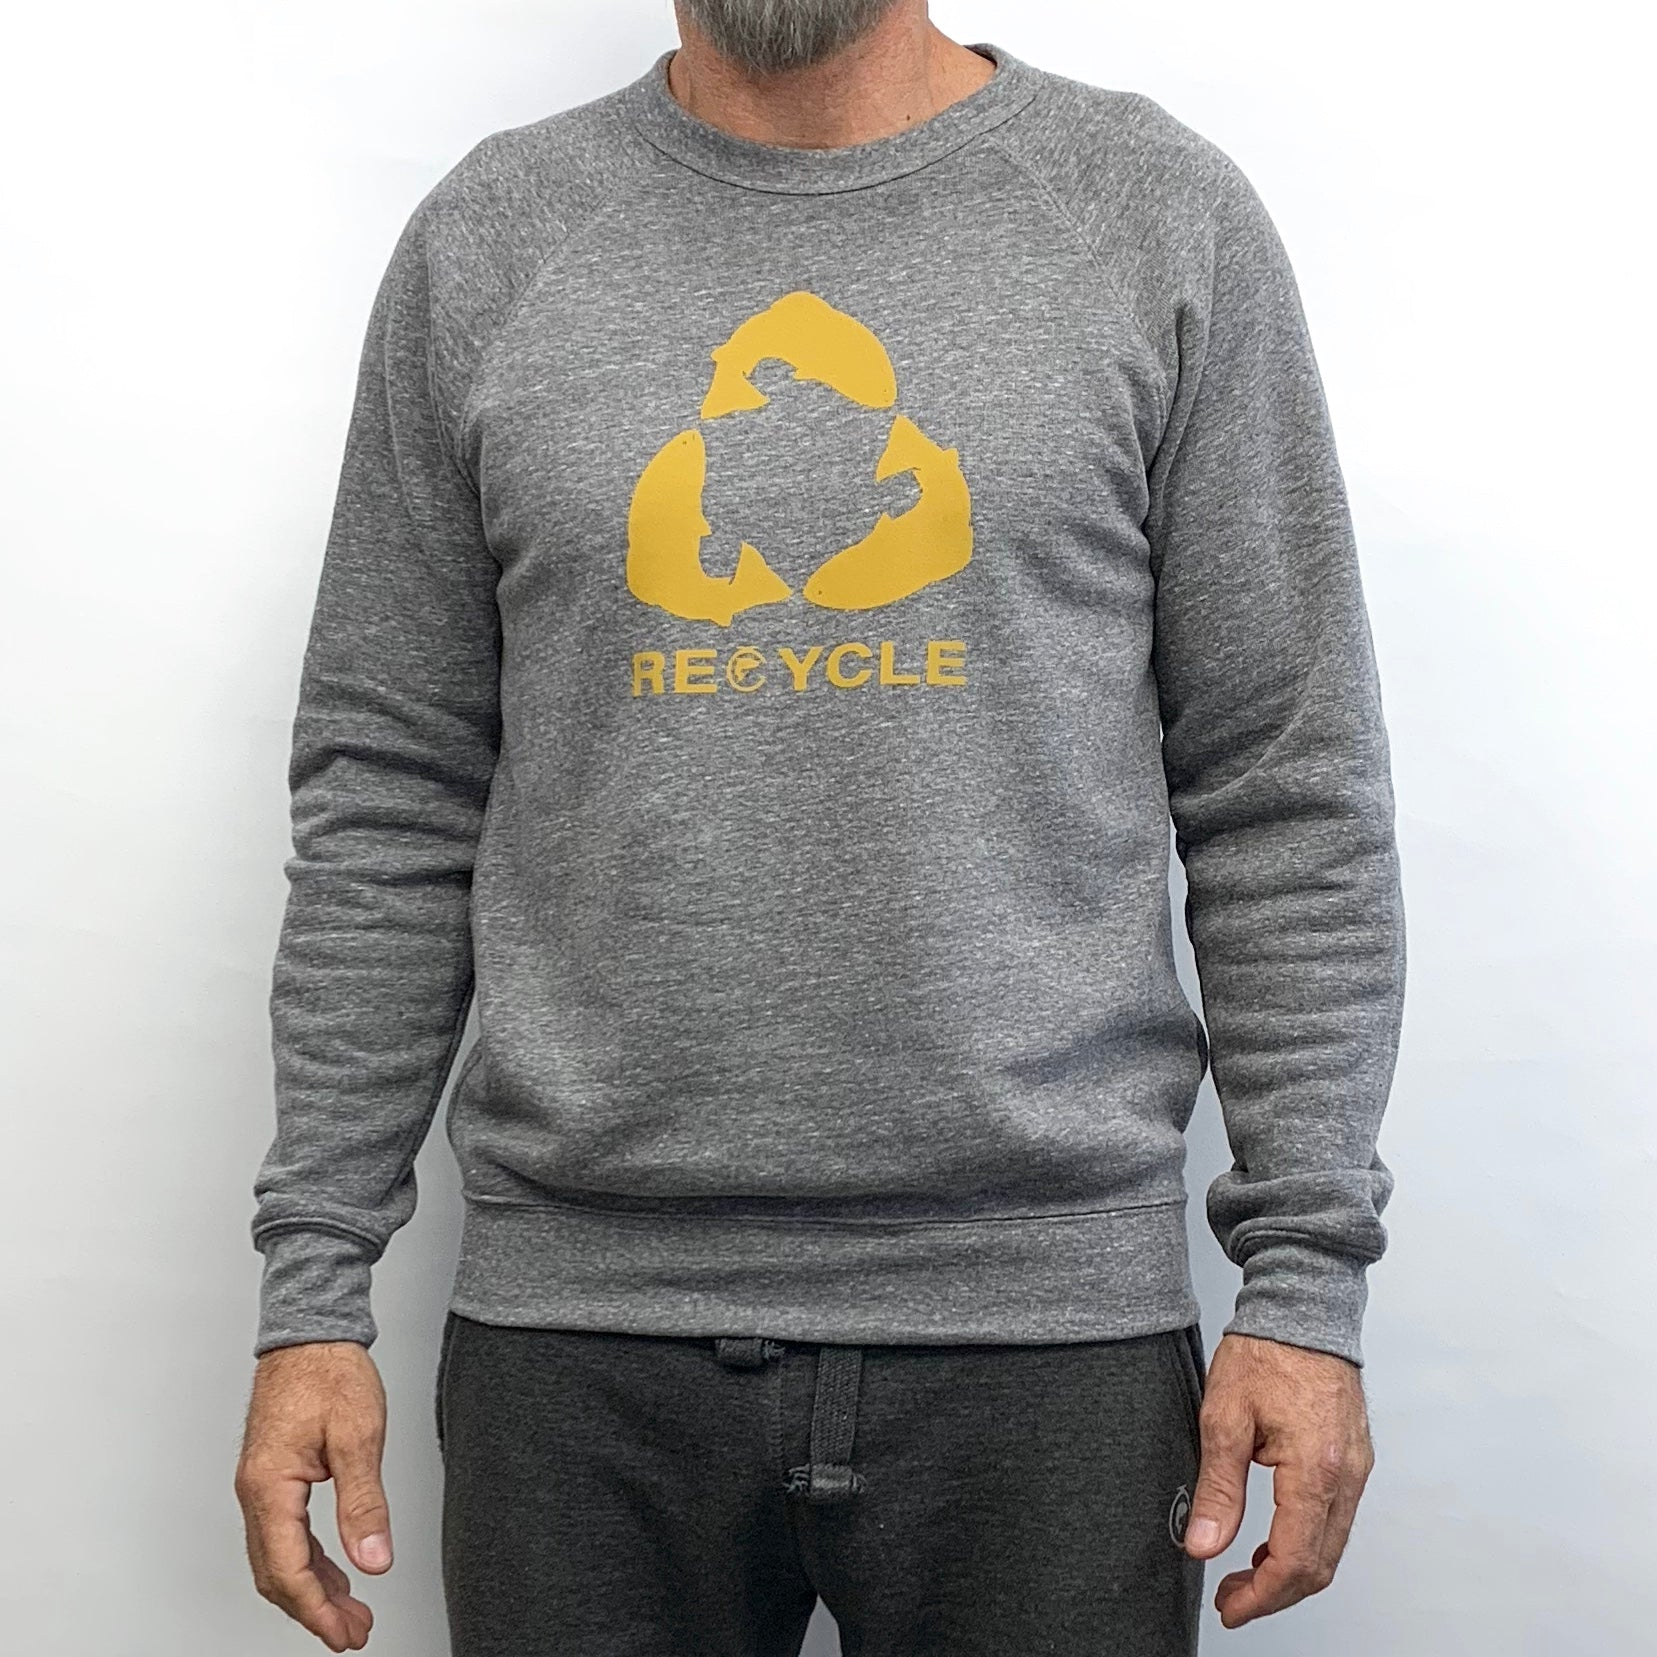 Recycle Sweatshirt (Unisex)